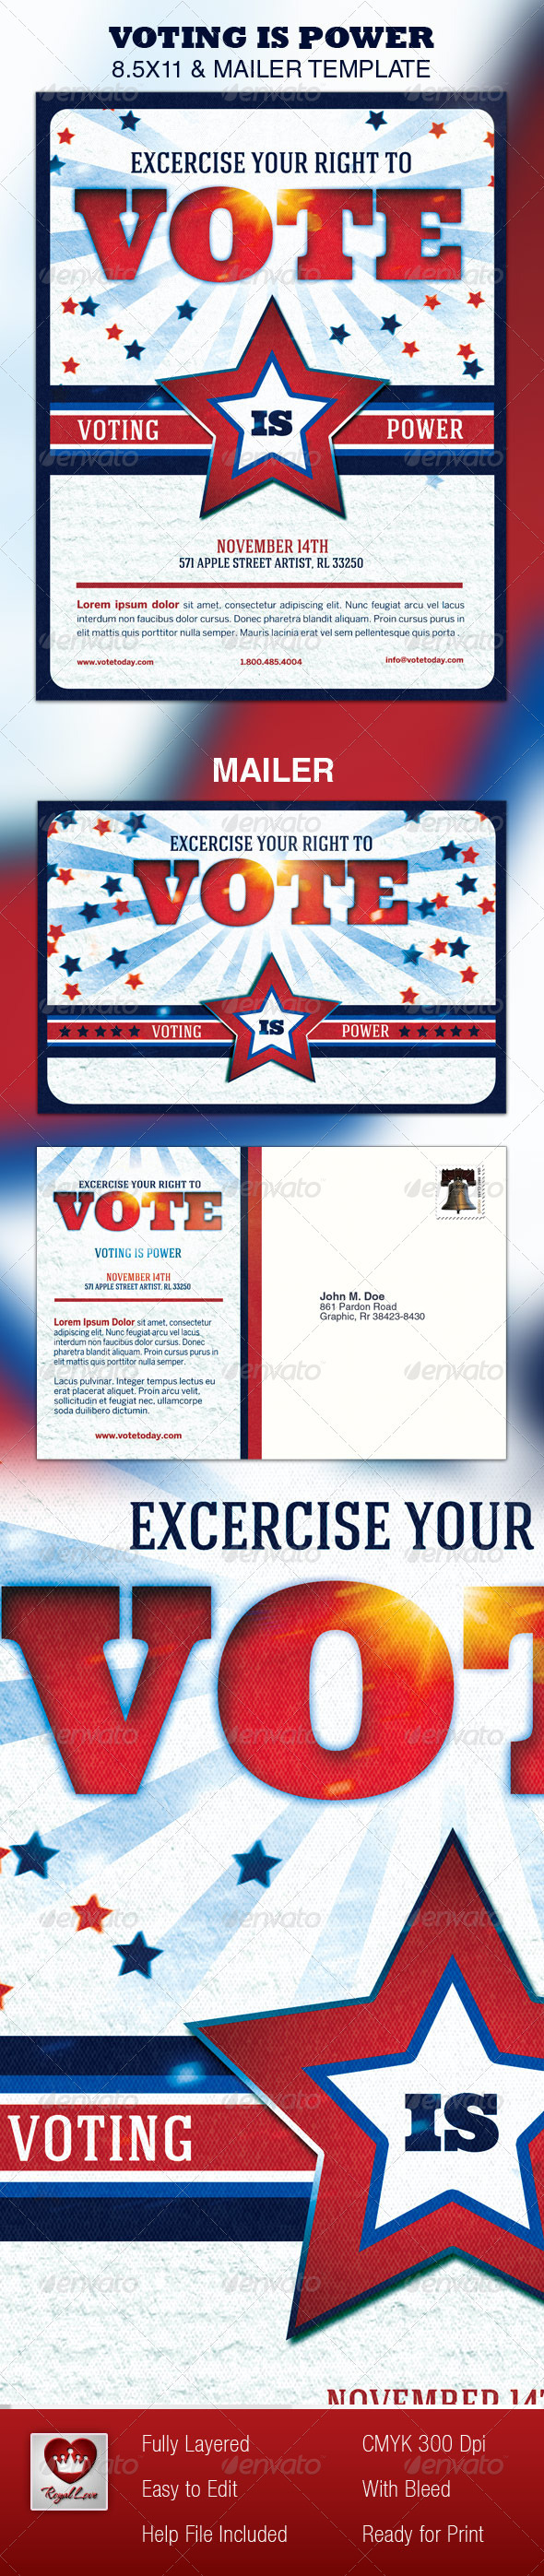 Vote 8.5x11 & Mailer Template - Events Flyers